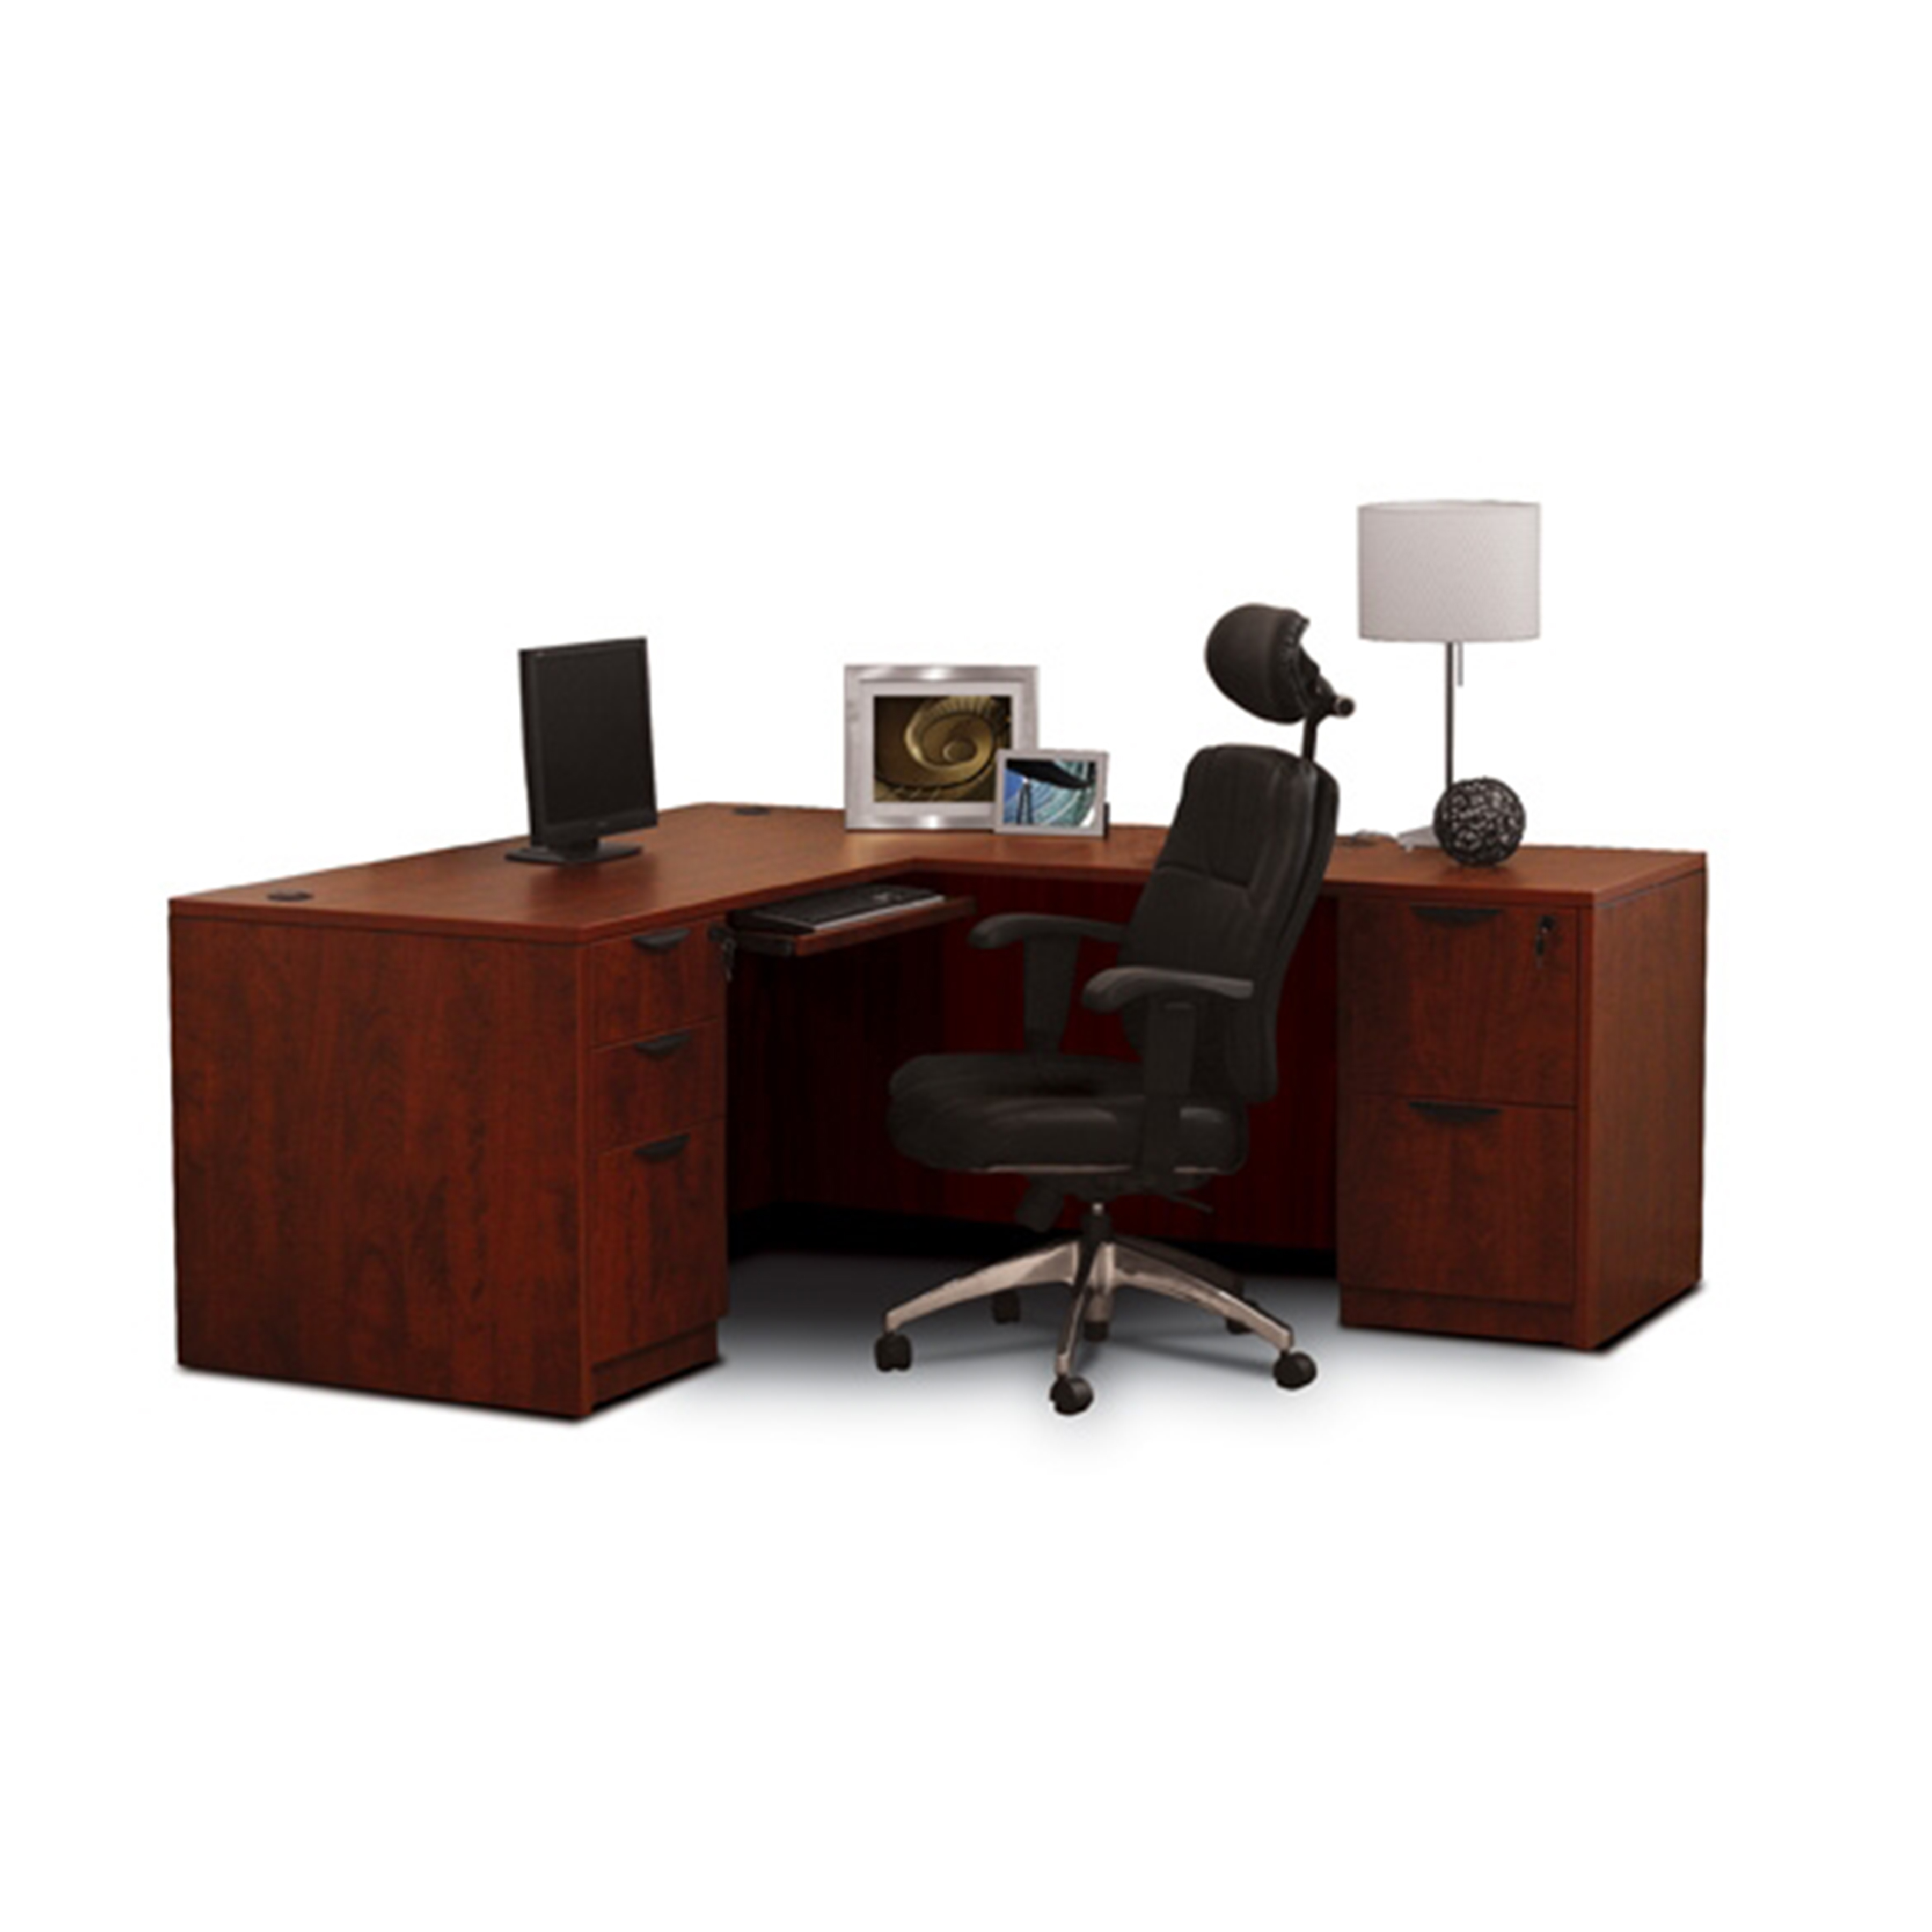 Attrayant OTG Laminate L Shaped Desk With Drawers